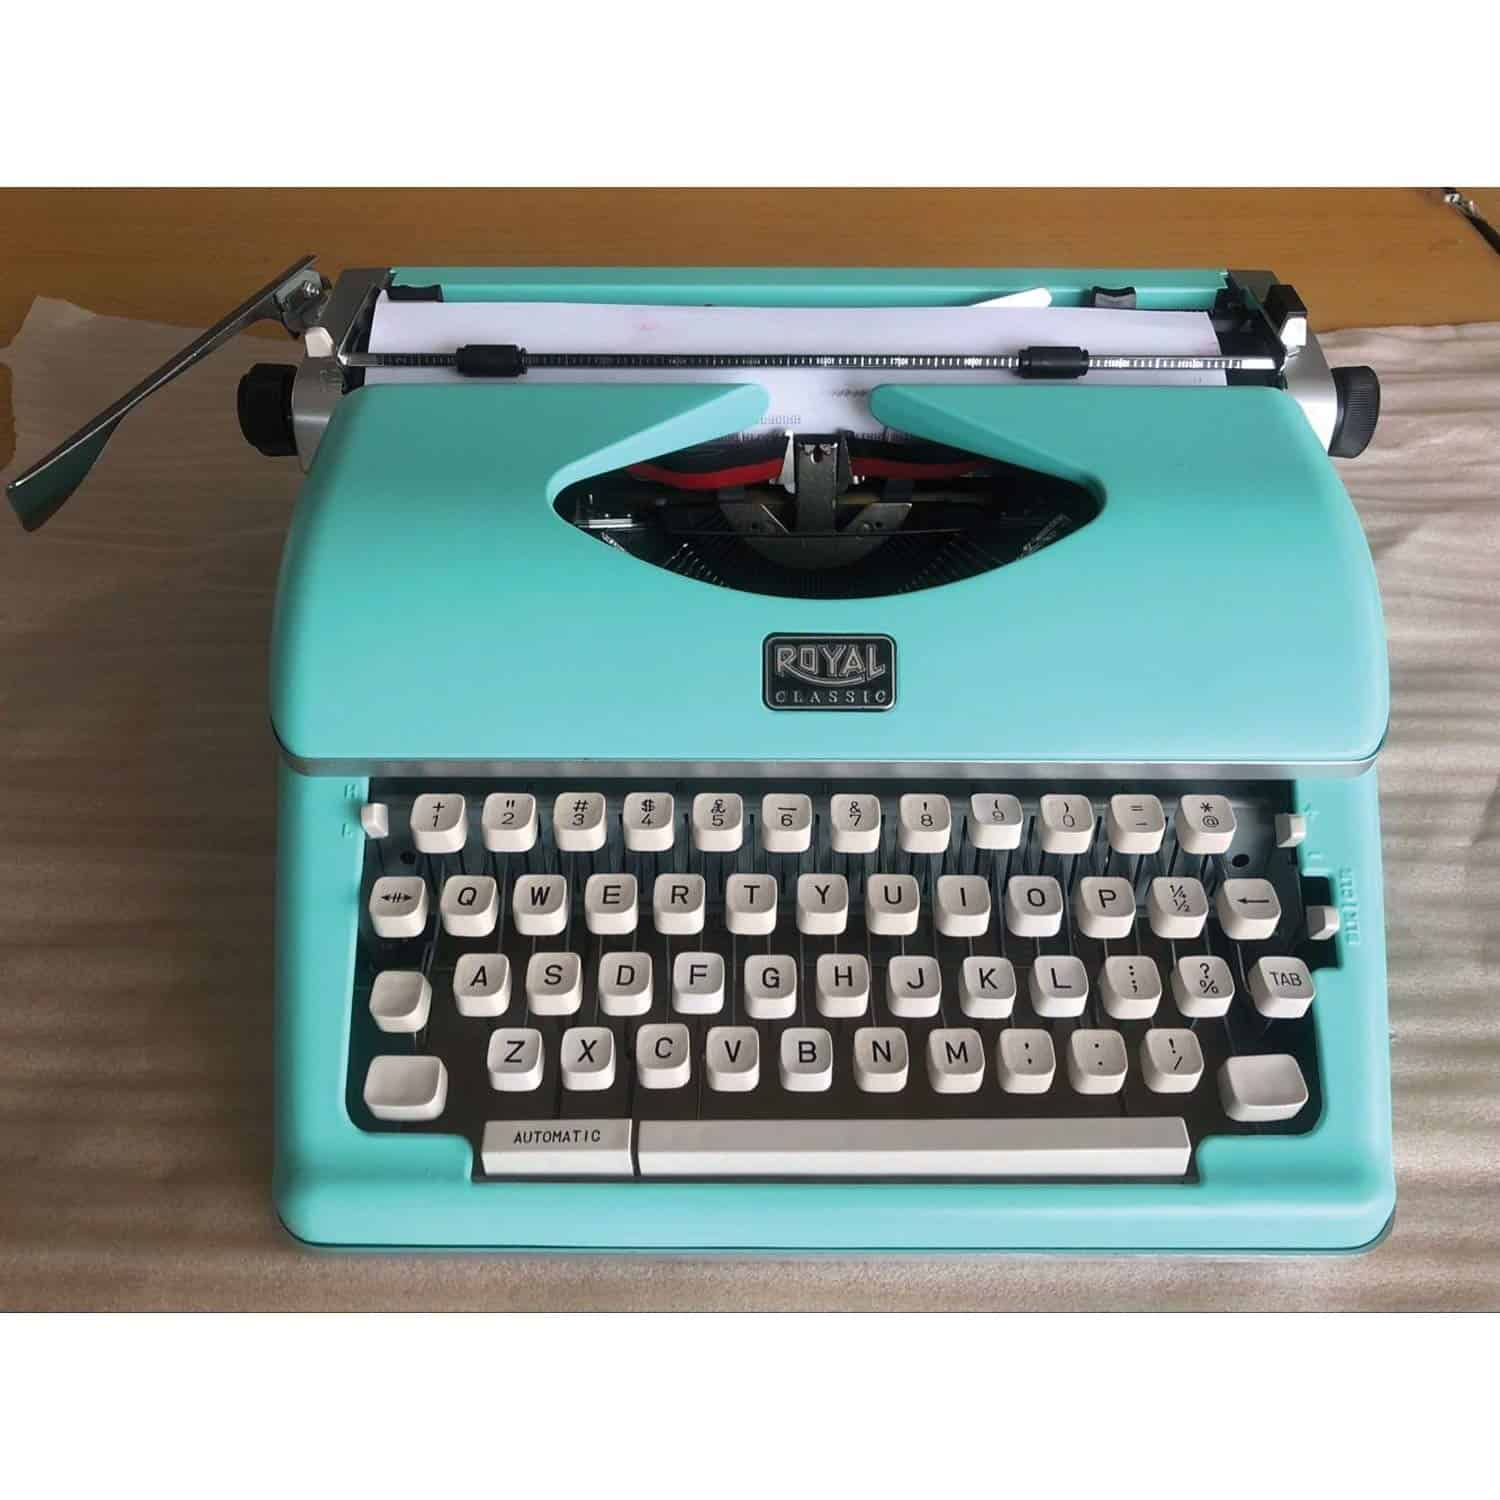 Royal Retro Classic Manual Typewriter Mint Green